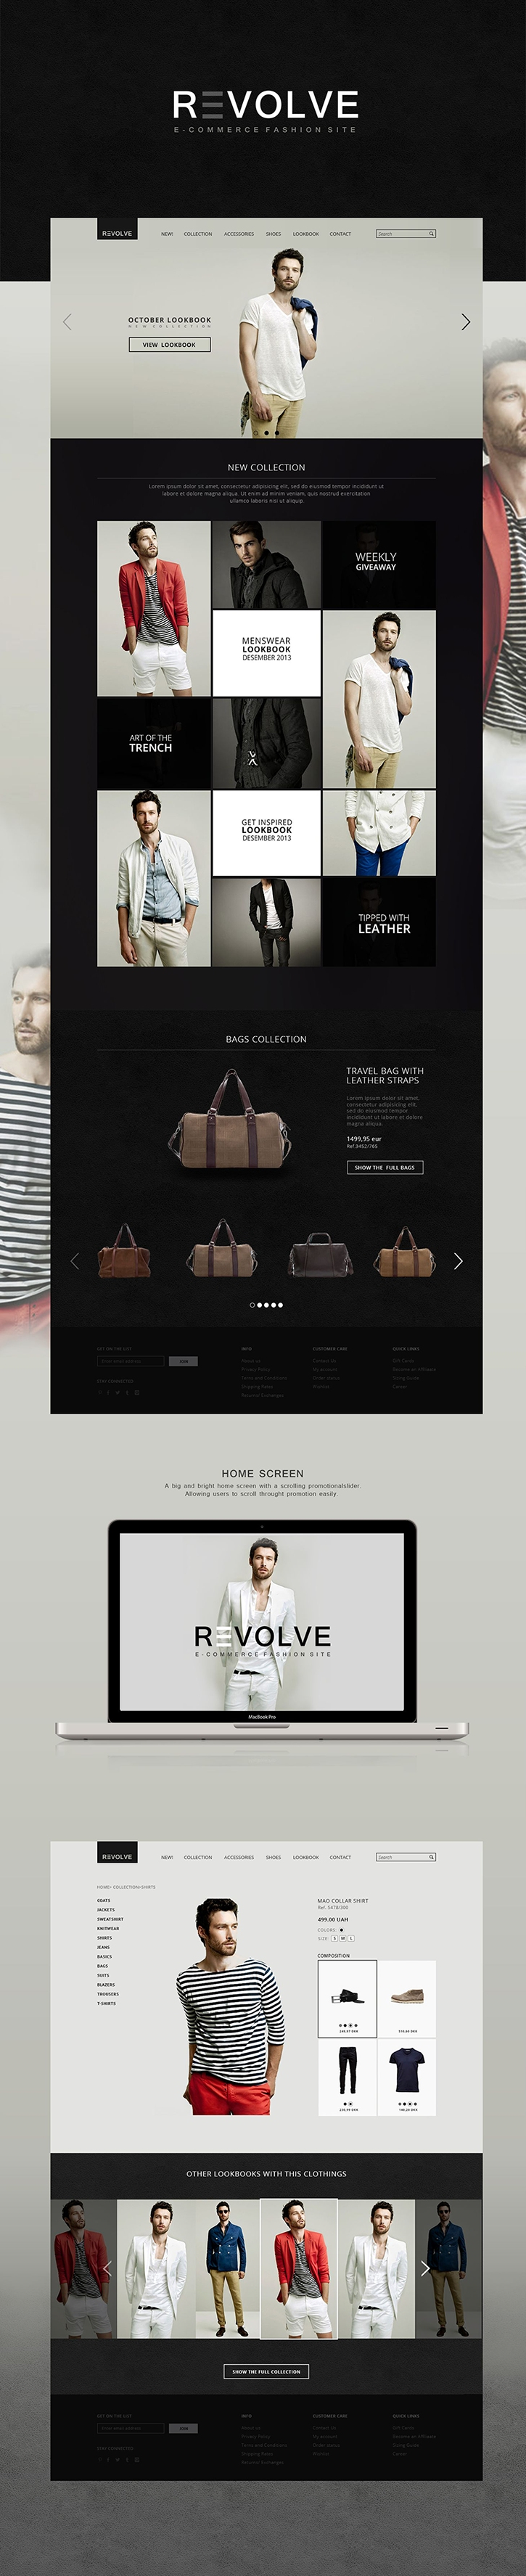 Revolve e-commerce website